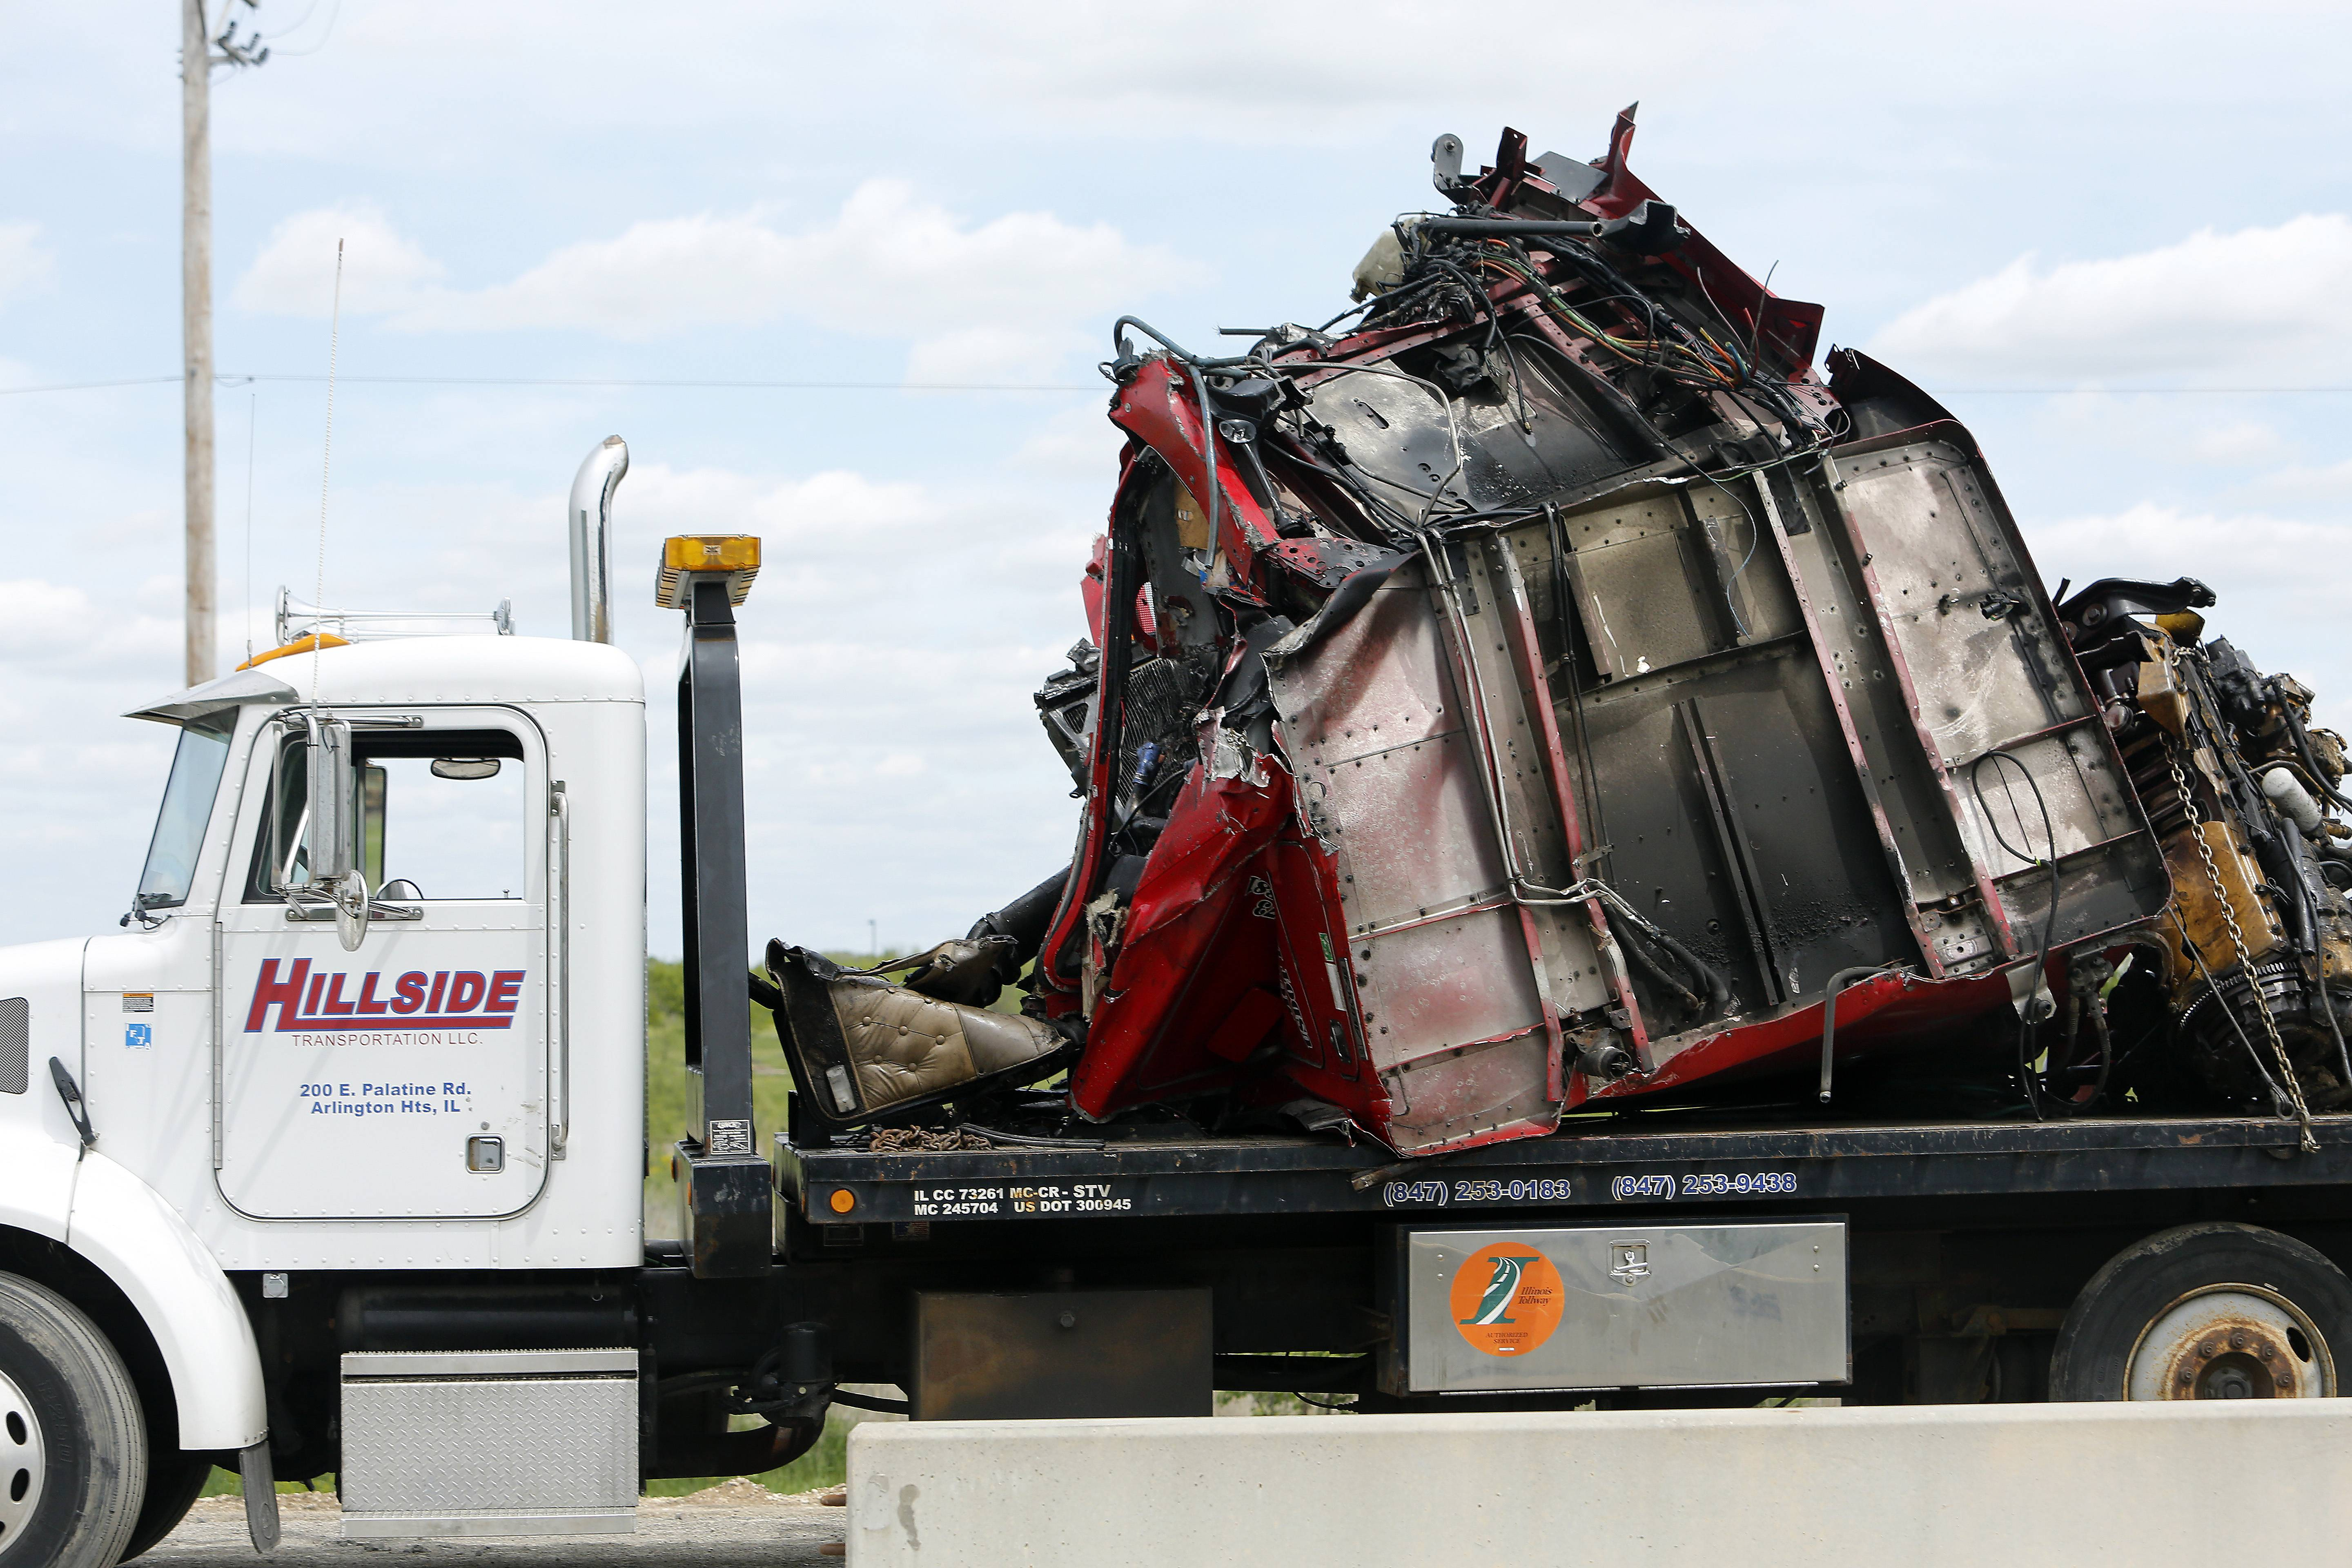 The remains of a truck sit on a flatbed on the shoulder of westbound Interstate 90 Thursday after a crash involving three semitrailers. Illinois State Police was investigating the crash near Huntley in which one truck driver was injured.